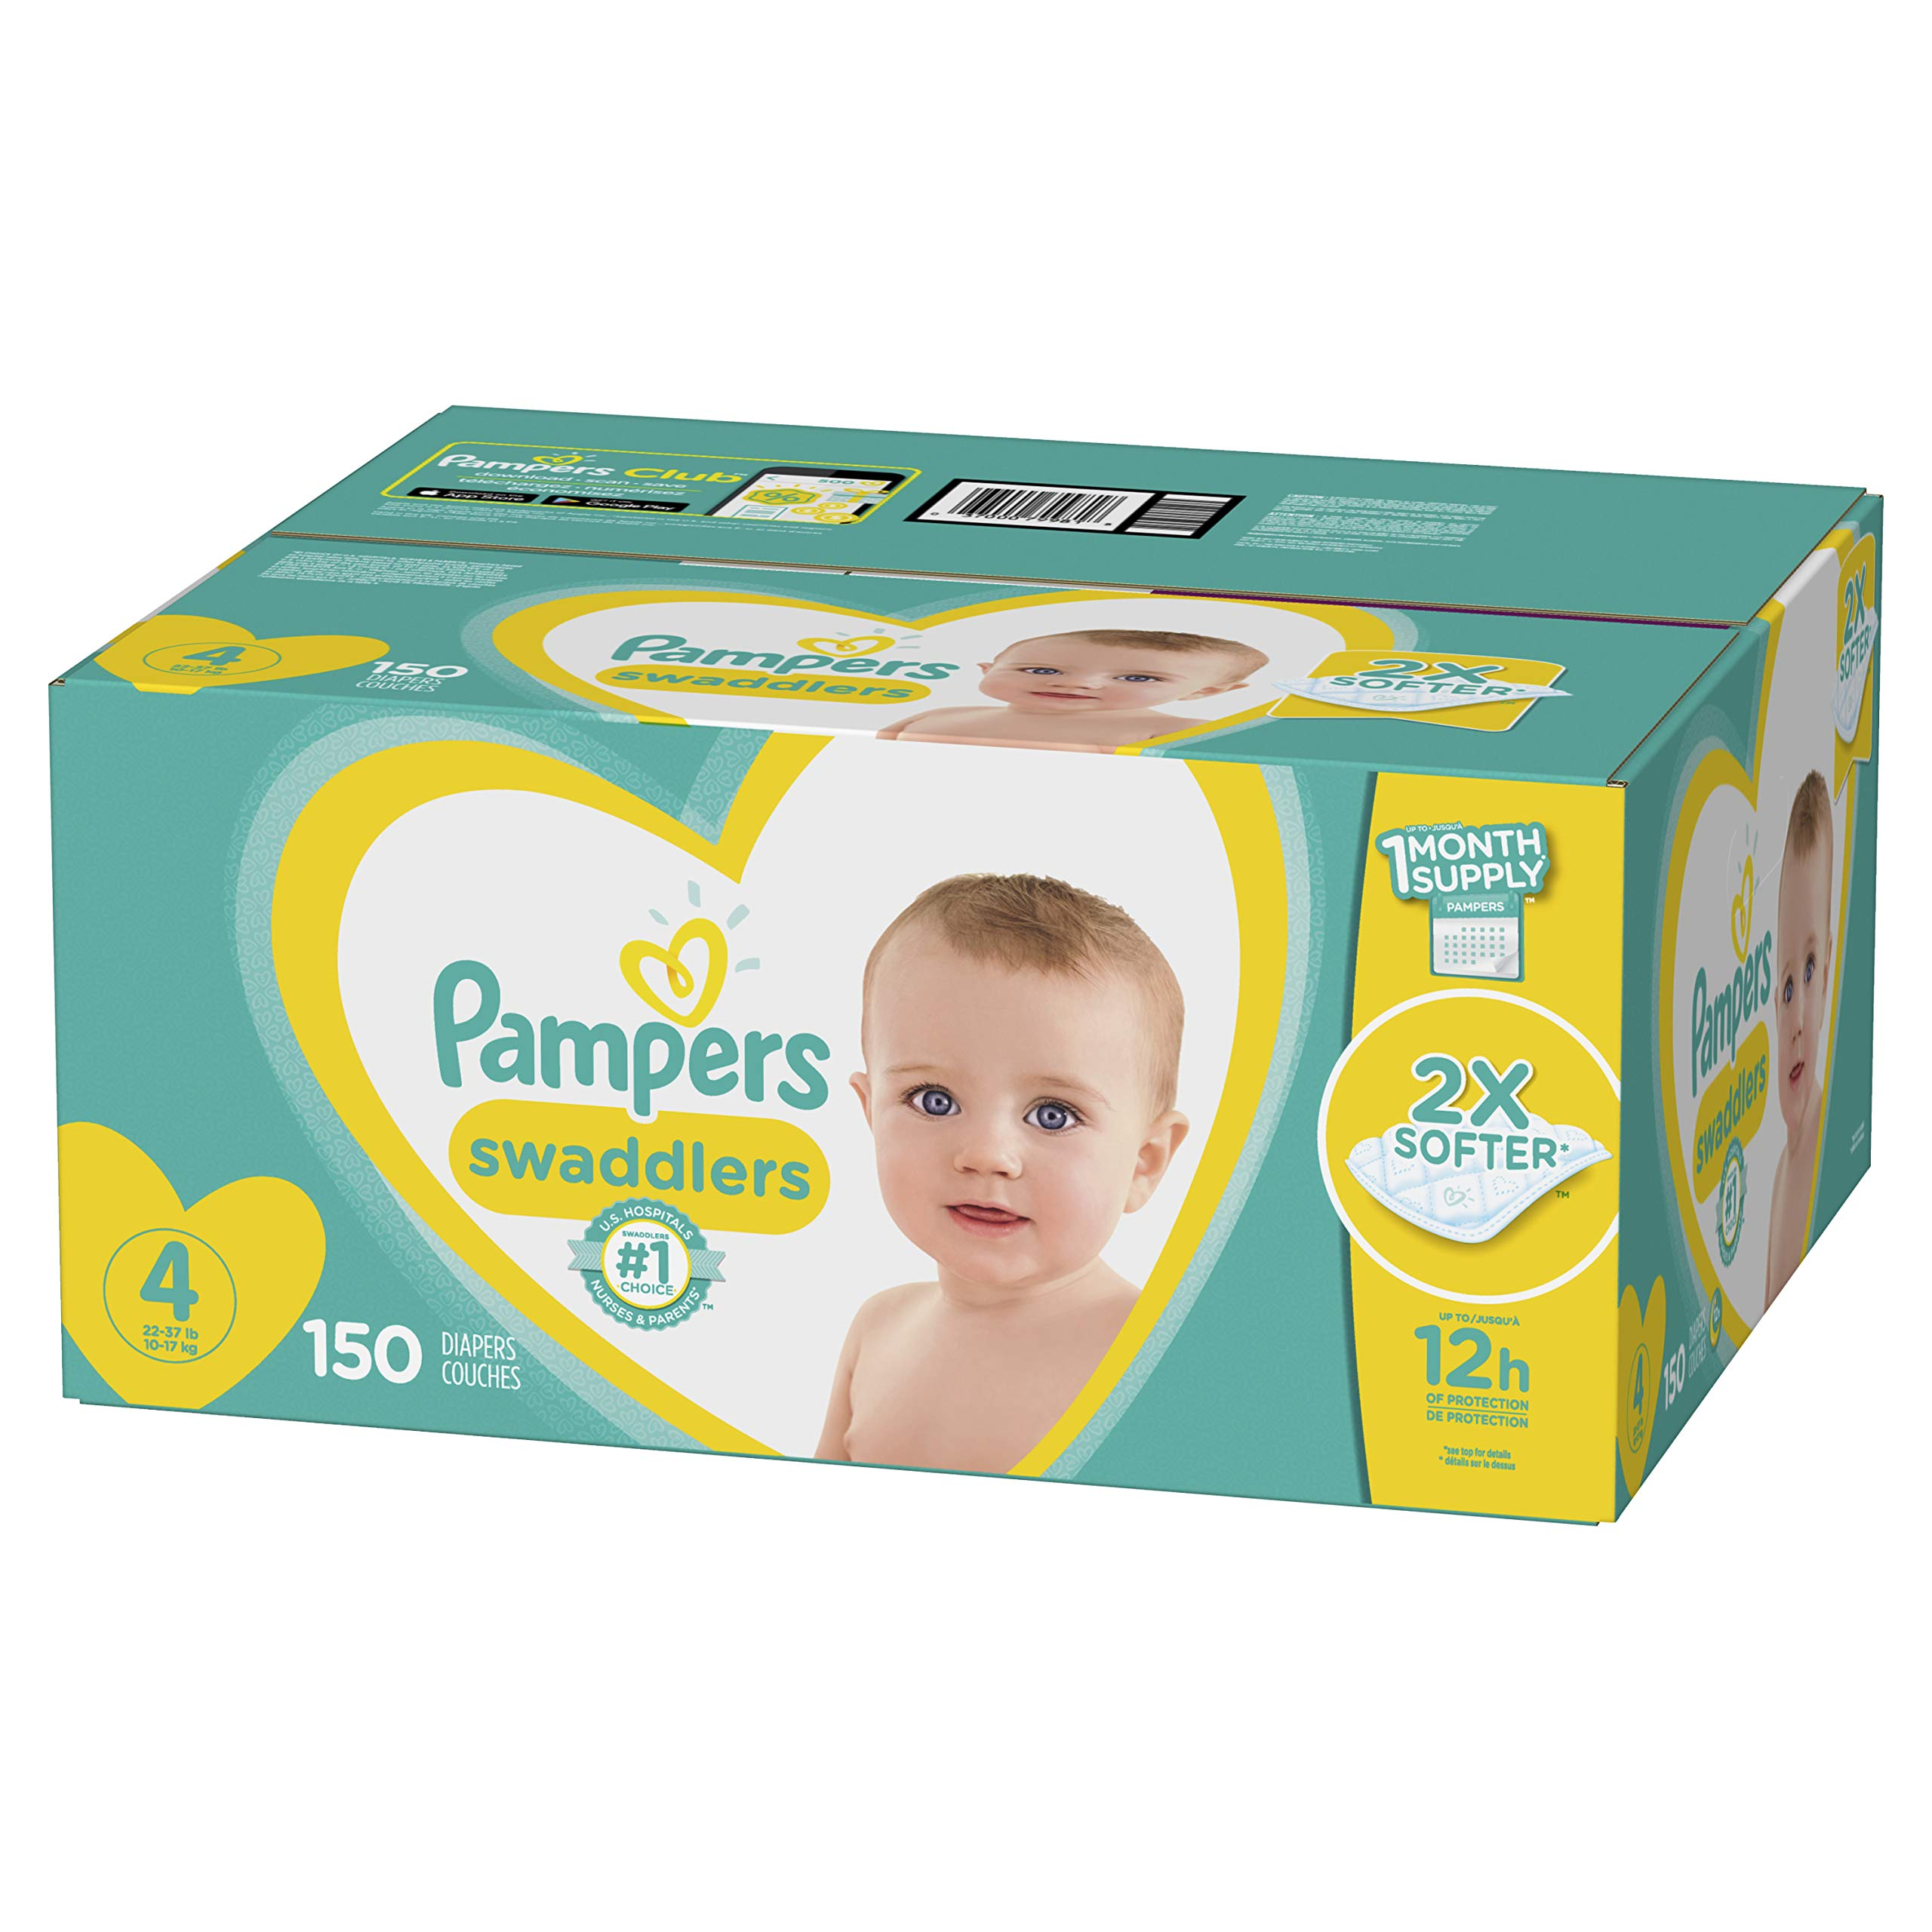 Diapers Size 4, 150 Count - Pampers Swaddlers Disposable Baby Diapers, ONE MONTH SUPPLY by Pampers